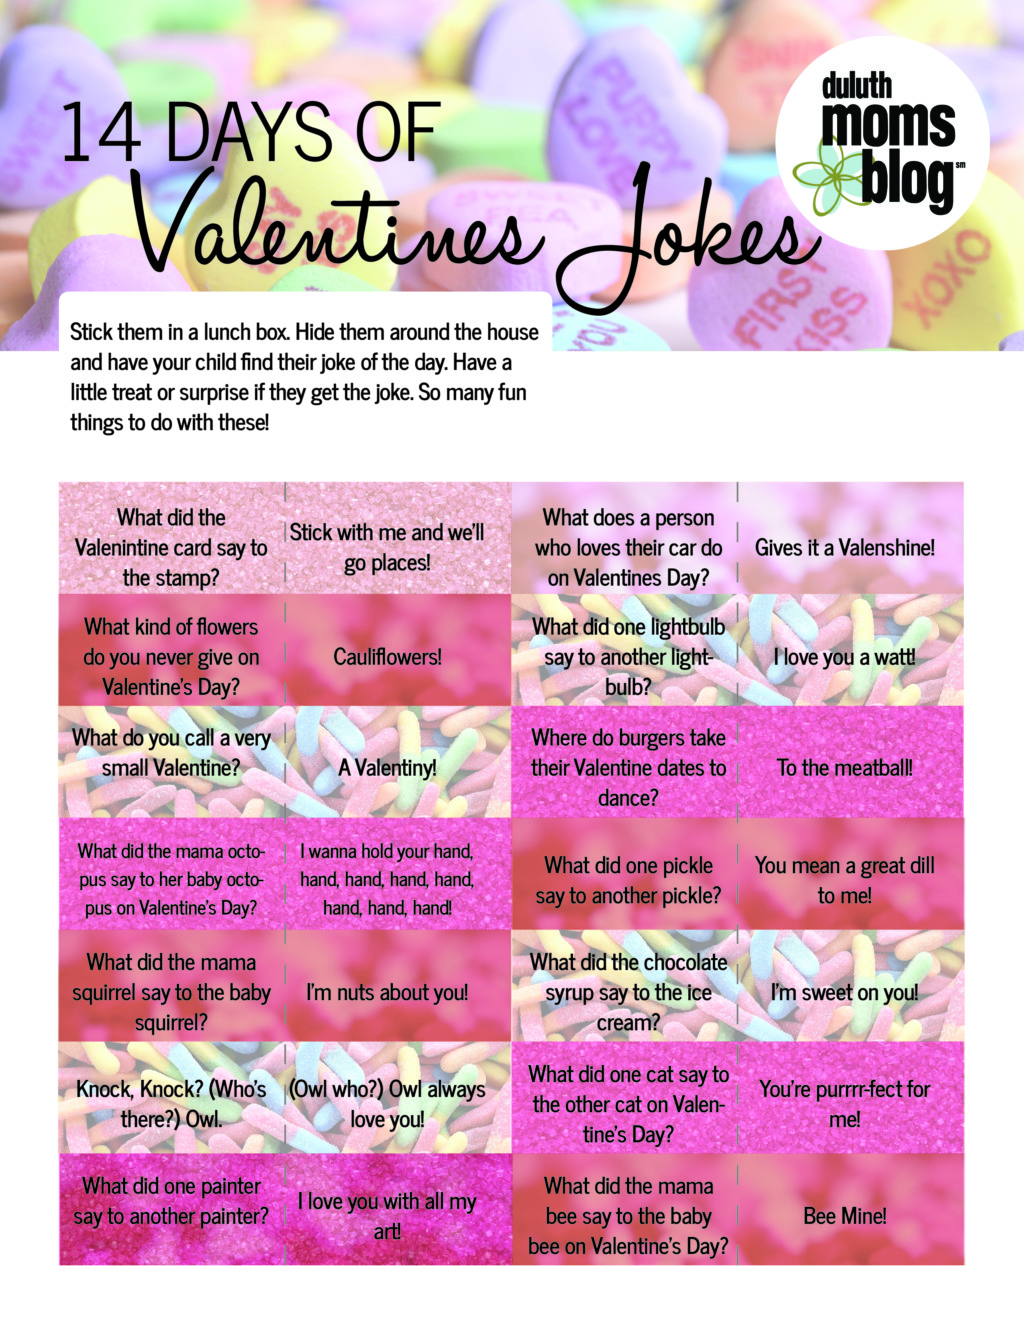 14 days of valentines | Duluth Moms Blog